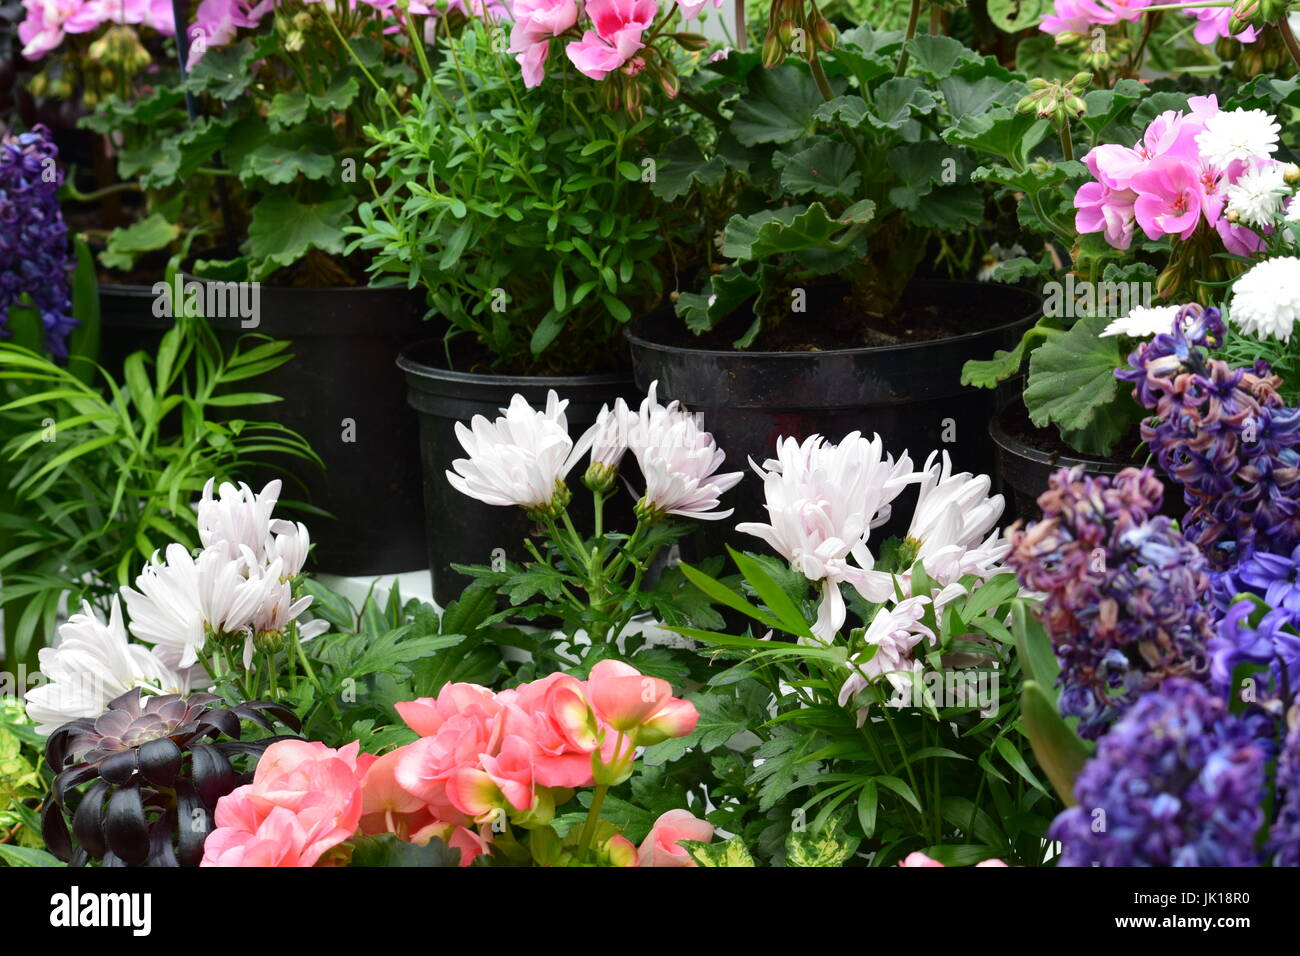 Hot house flowers stock photo 149390276 alamy hot house flowers mightylinksfo